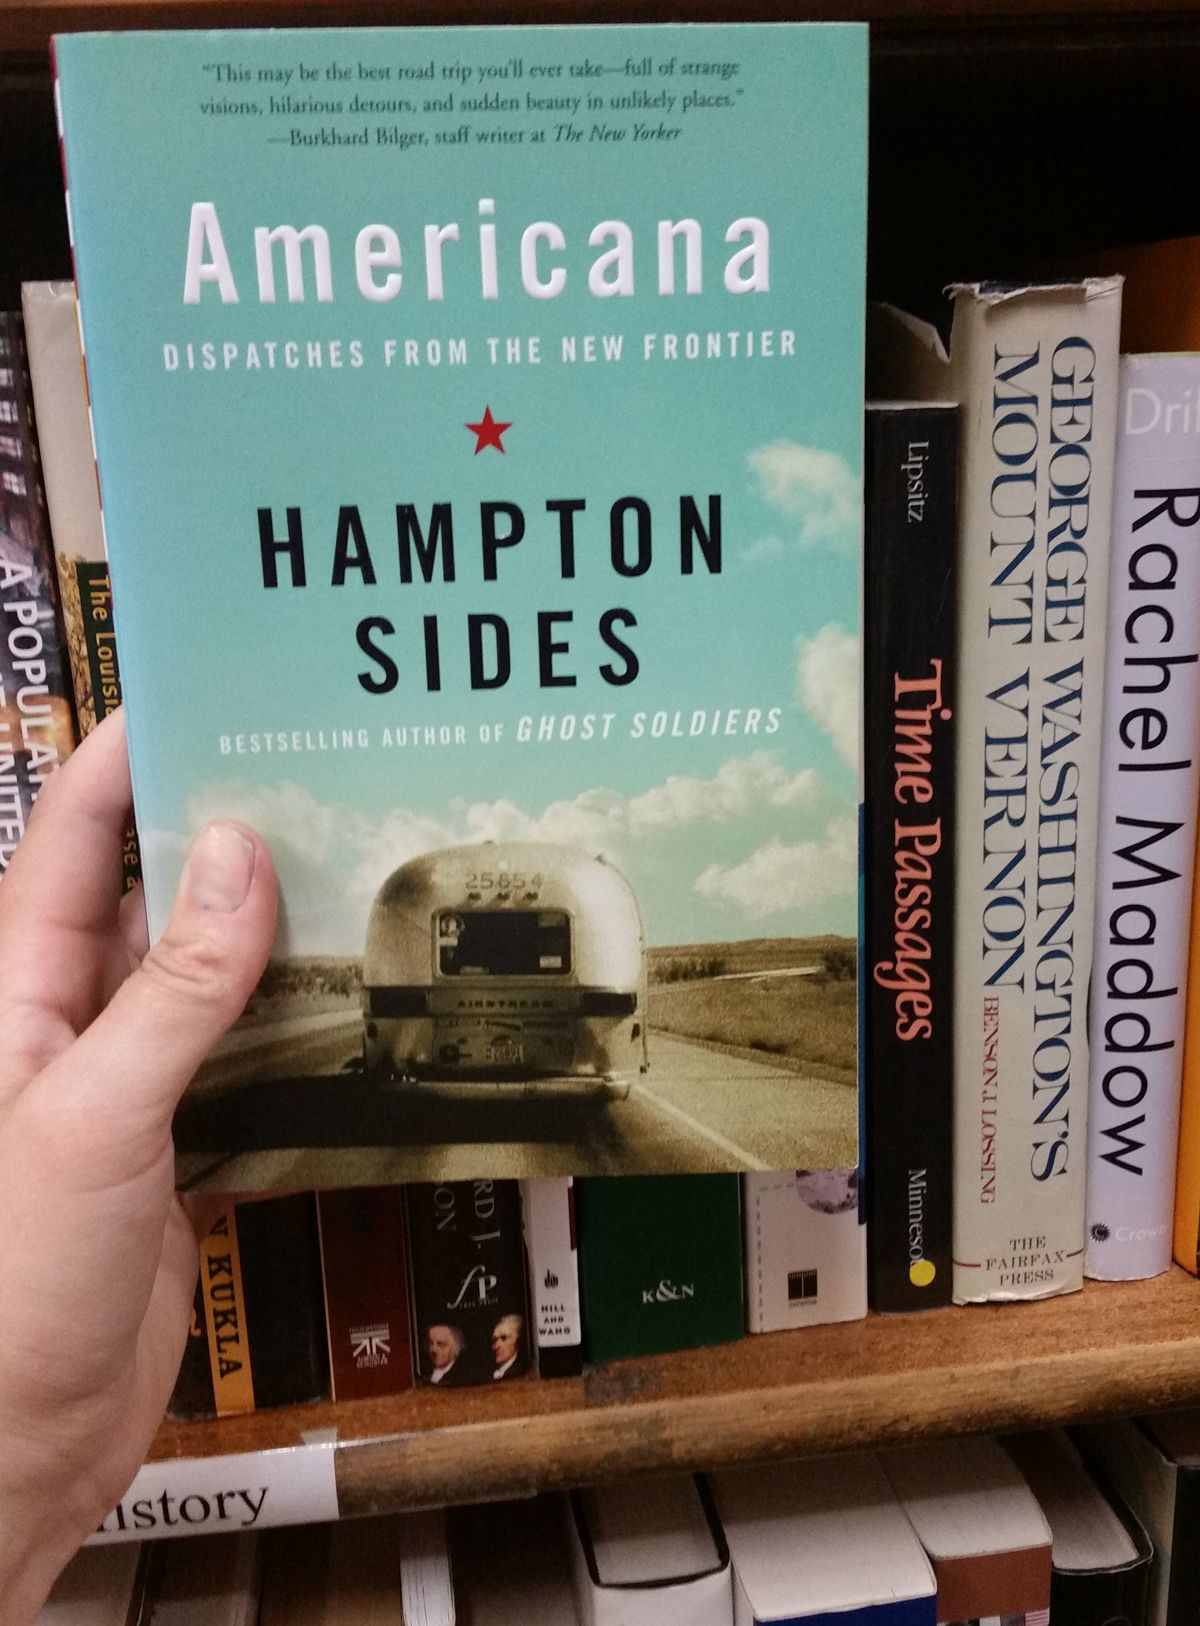 Americana: Dispatches from the New Frontier by Hampton Sides